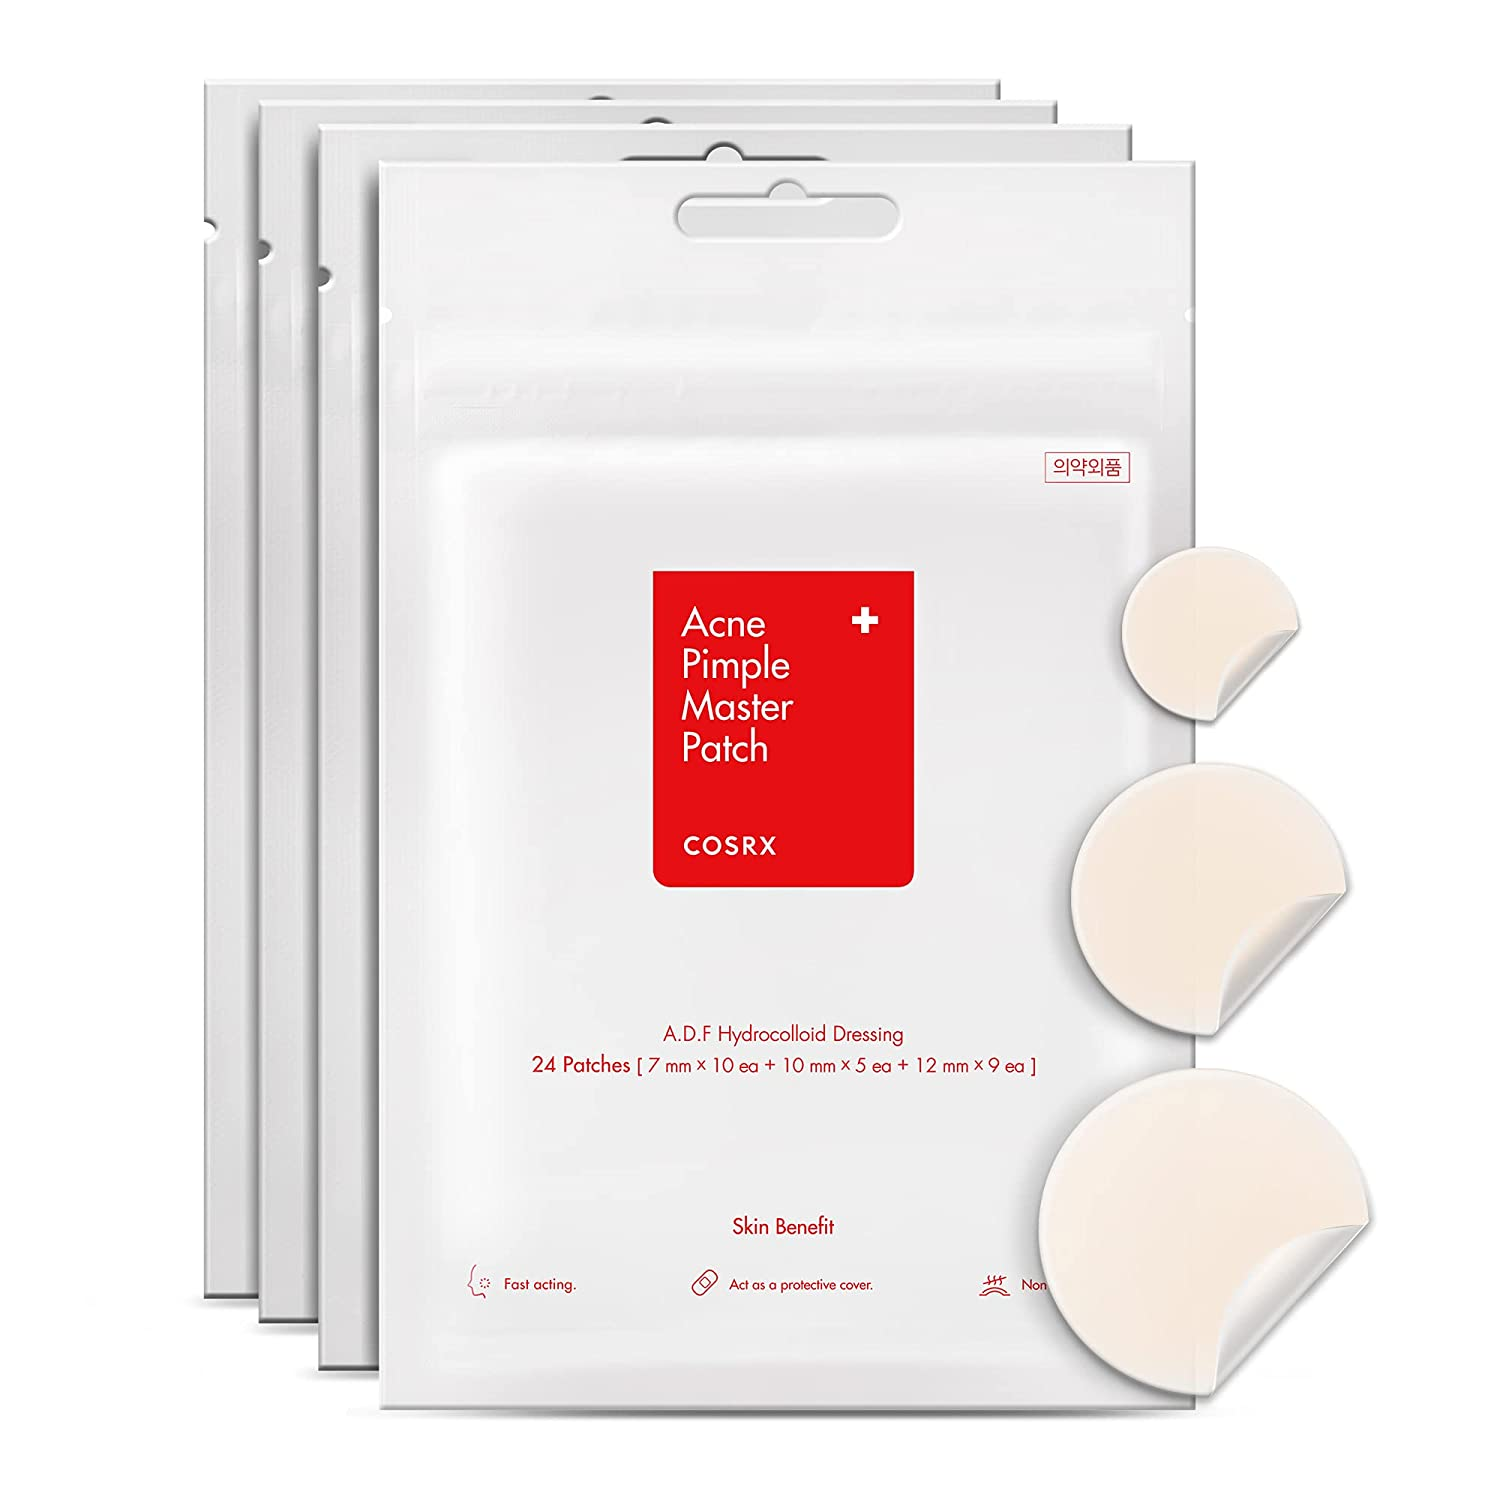 COSRX Acne Pimple Master Patch 96 Patches (4 Packs of 24 Patches)   A.D.F. Hydrocolloid Dressing   Quick & Easy Treatment